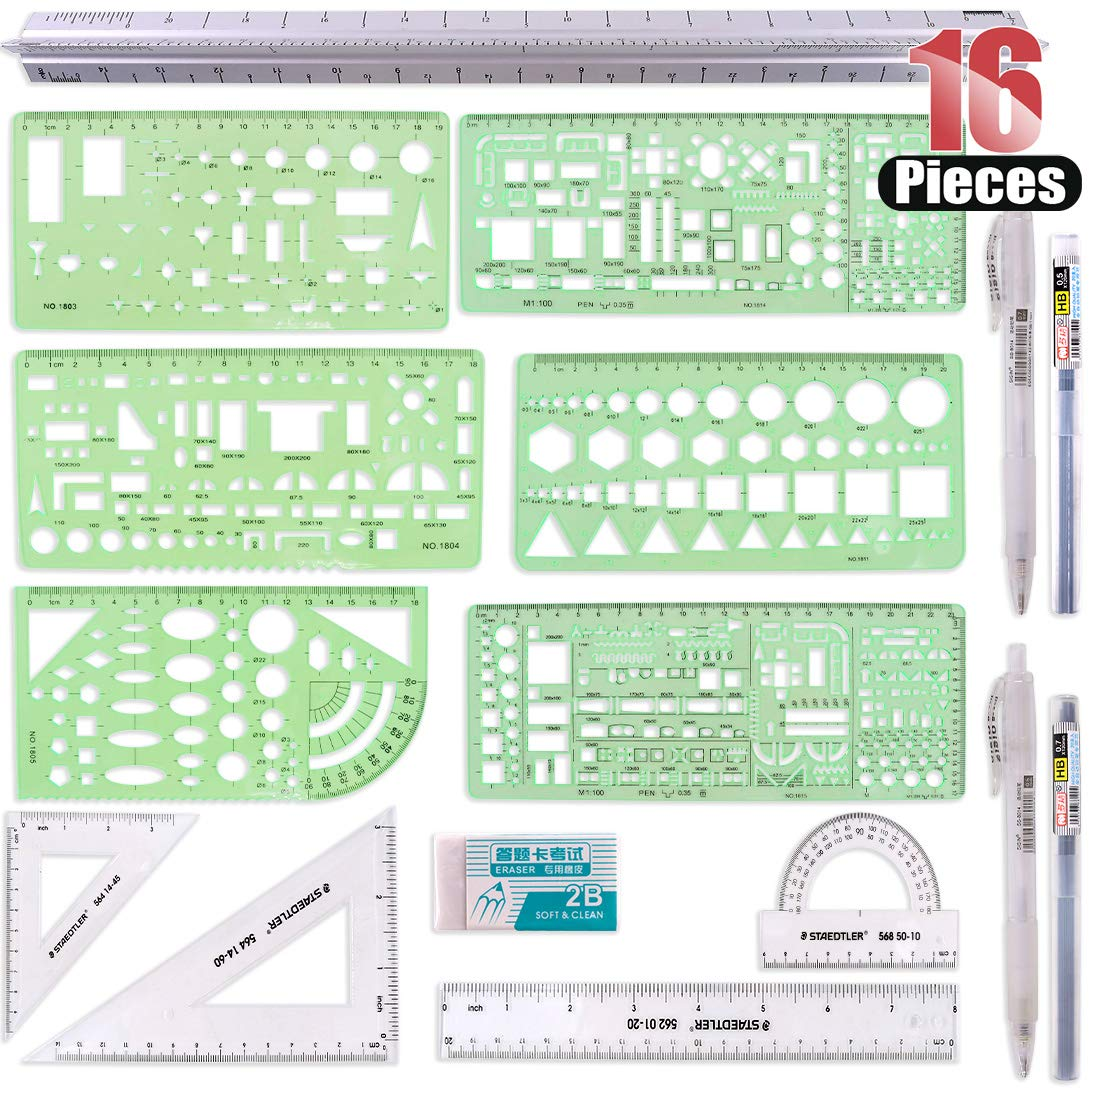 Hilitchi 16 Pcs Pack Plastic Measuring Templates Building Formwork Stencils Geometric Building Furniture Drawing Template Geometry Rulers and Drafting Scale Ruler with Eraser Pencil and Refills by Hilitchi